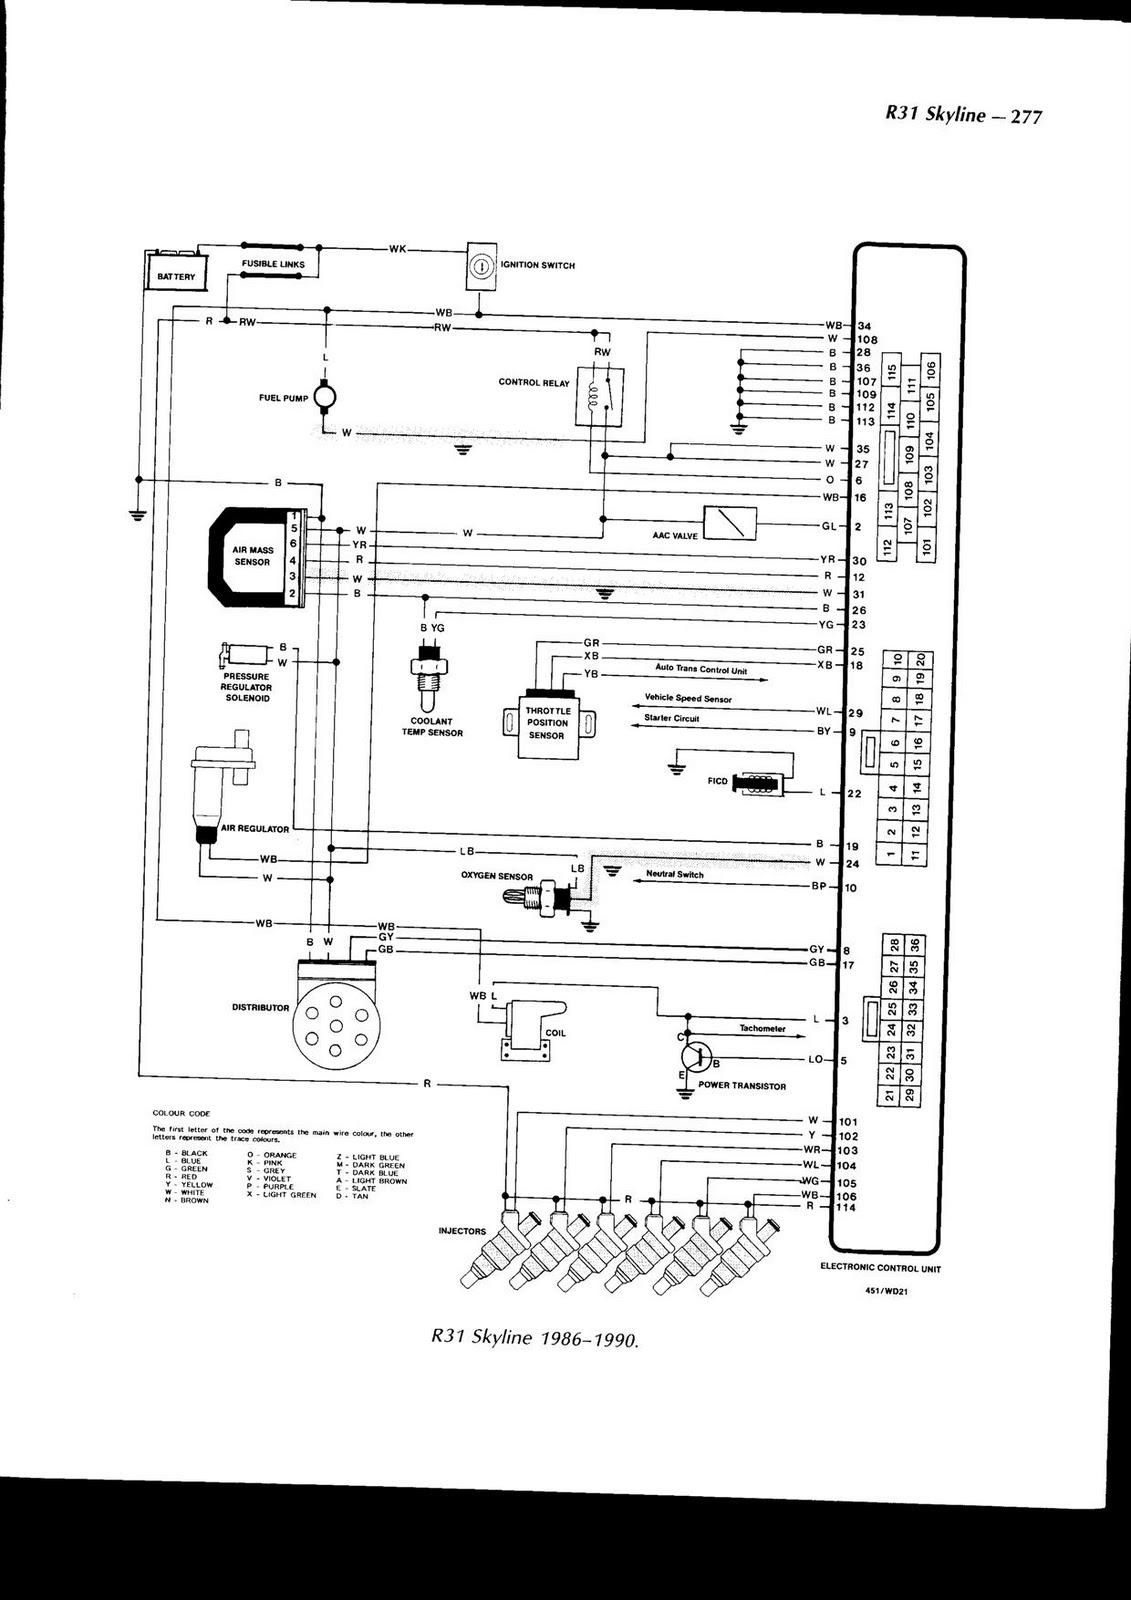 Wiring And Schematic Diagram : Rb wiring diagrams zx project